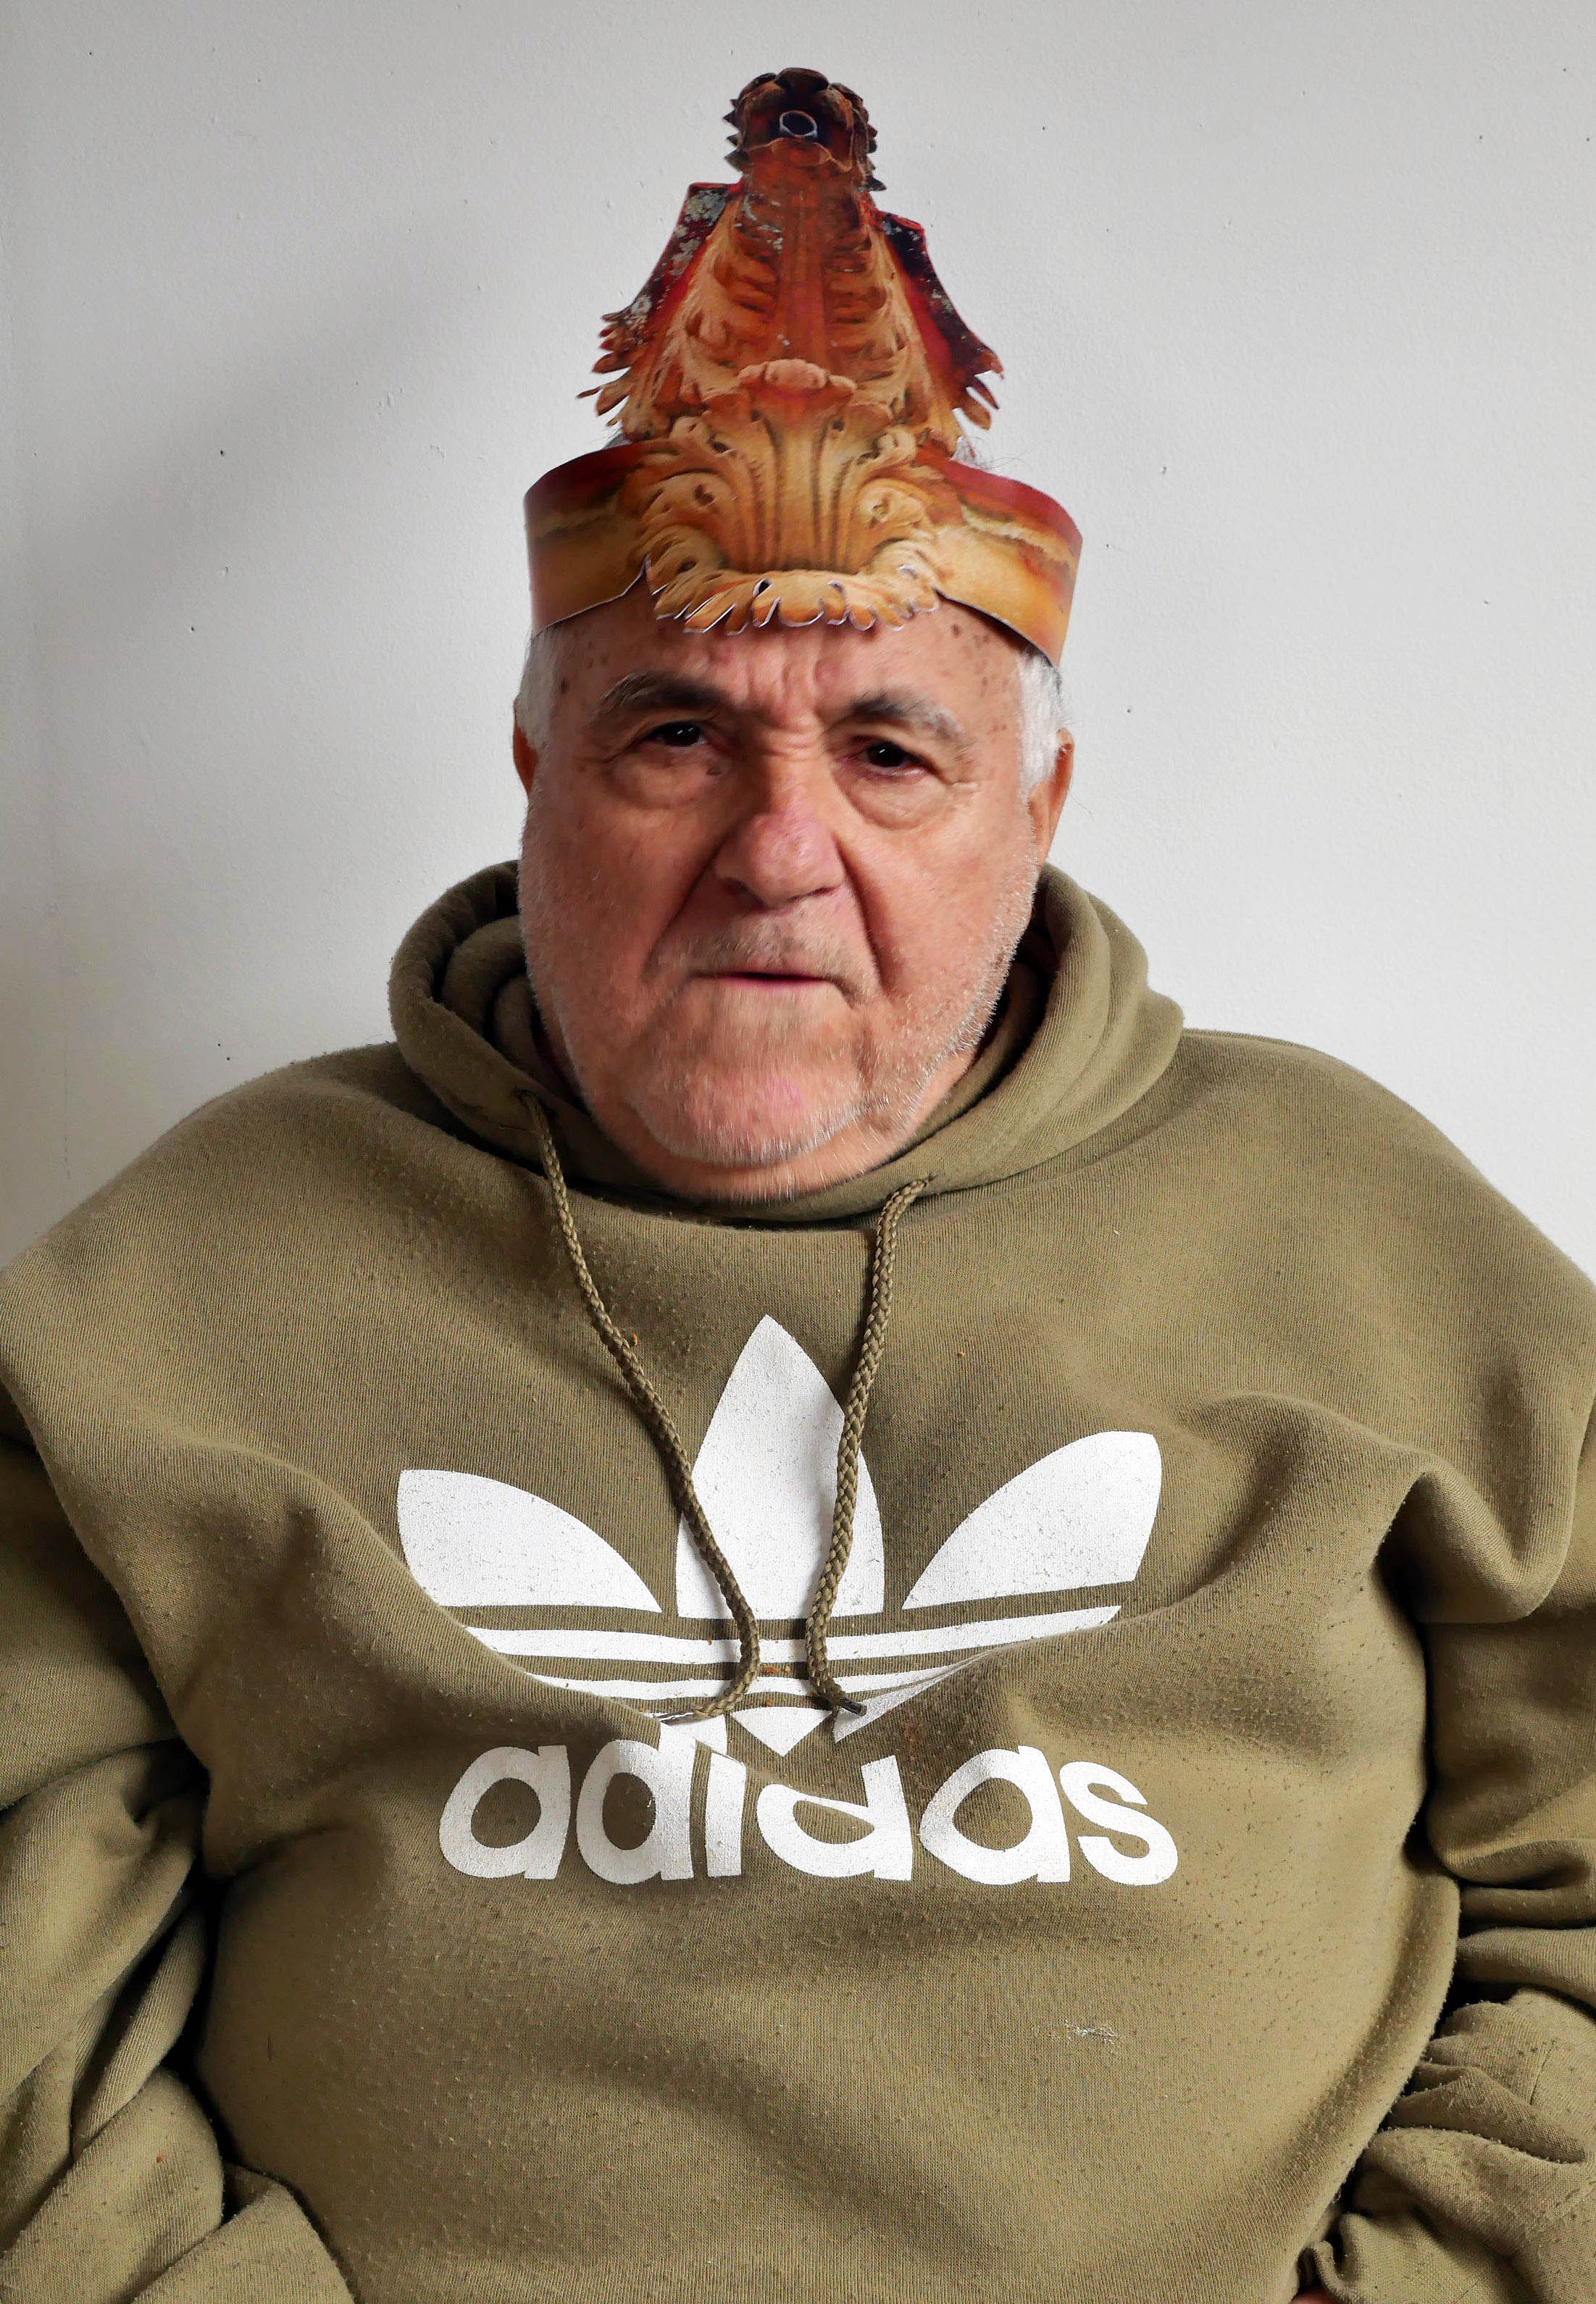 A portrait of old man looking straight at the camera. He has a grumpy expression on his face. He is wearing a paper party hat in the form of a Gargoyle. He is wearing a beige sports jumper with a large white Adidas logo printed on the front.